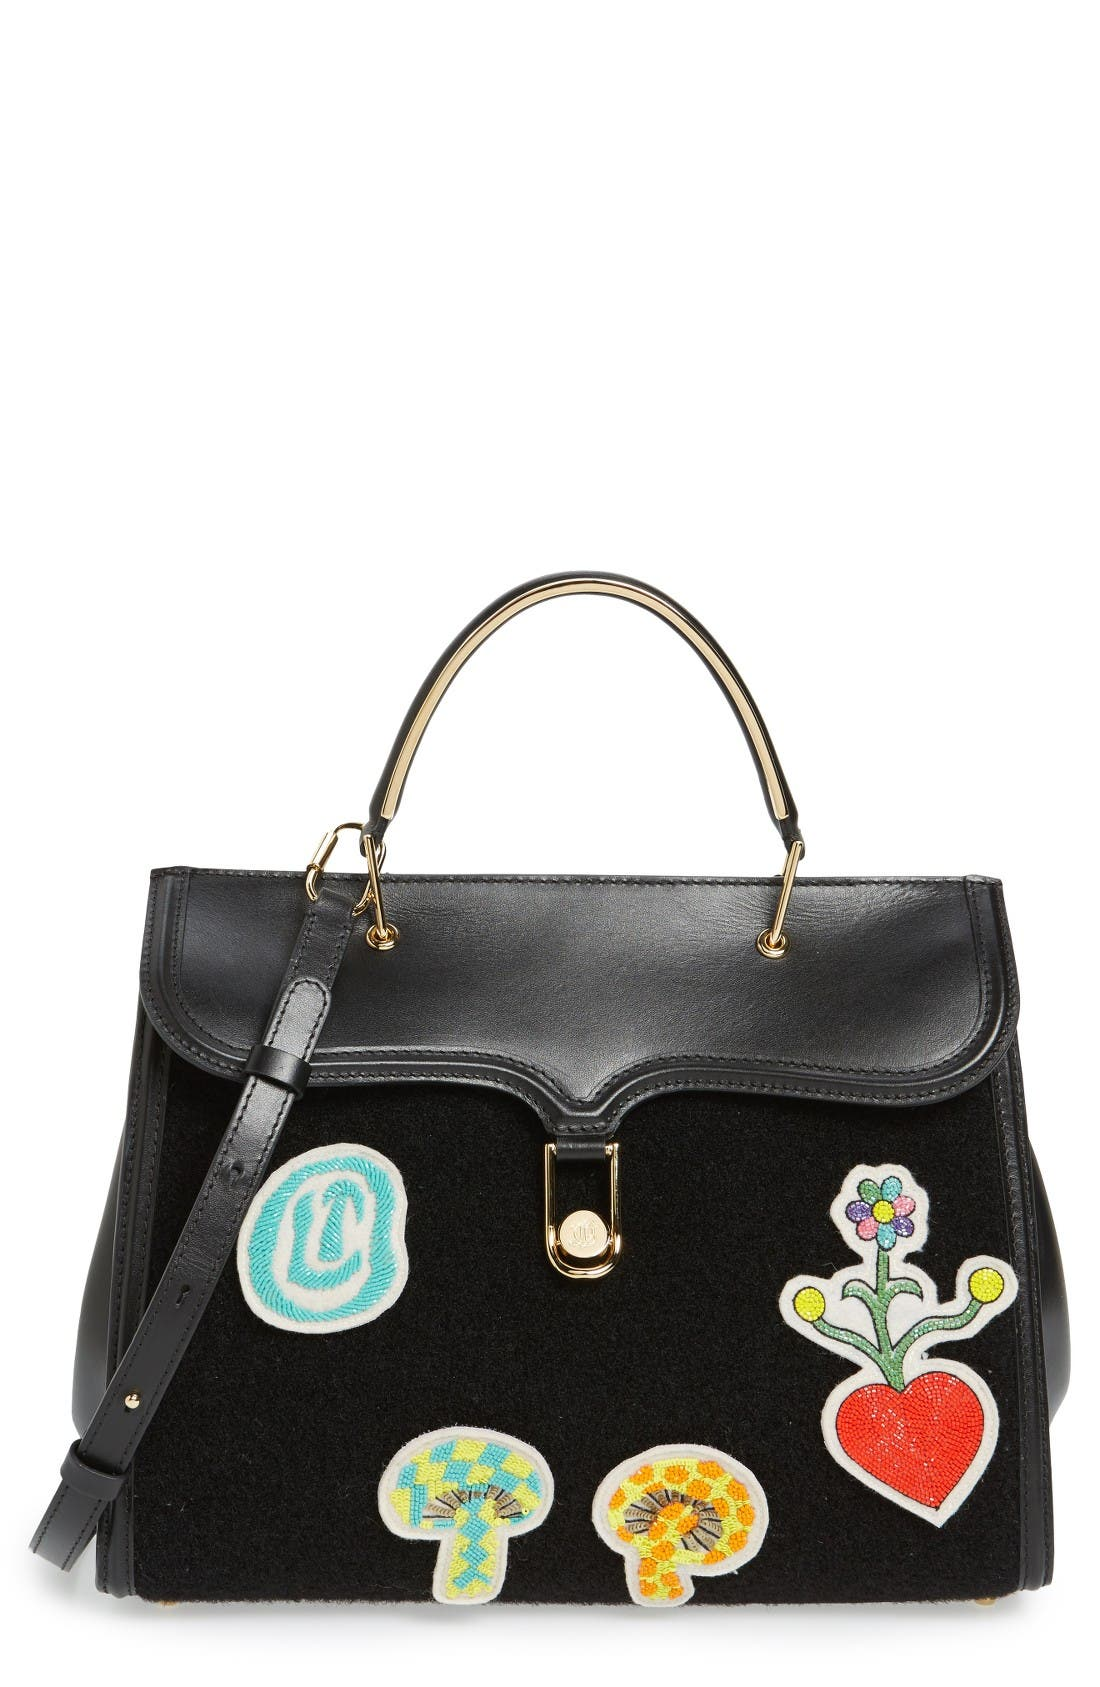 Main Image - Olympia Le-Tan Beaded Patches Satchel